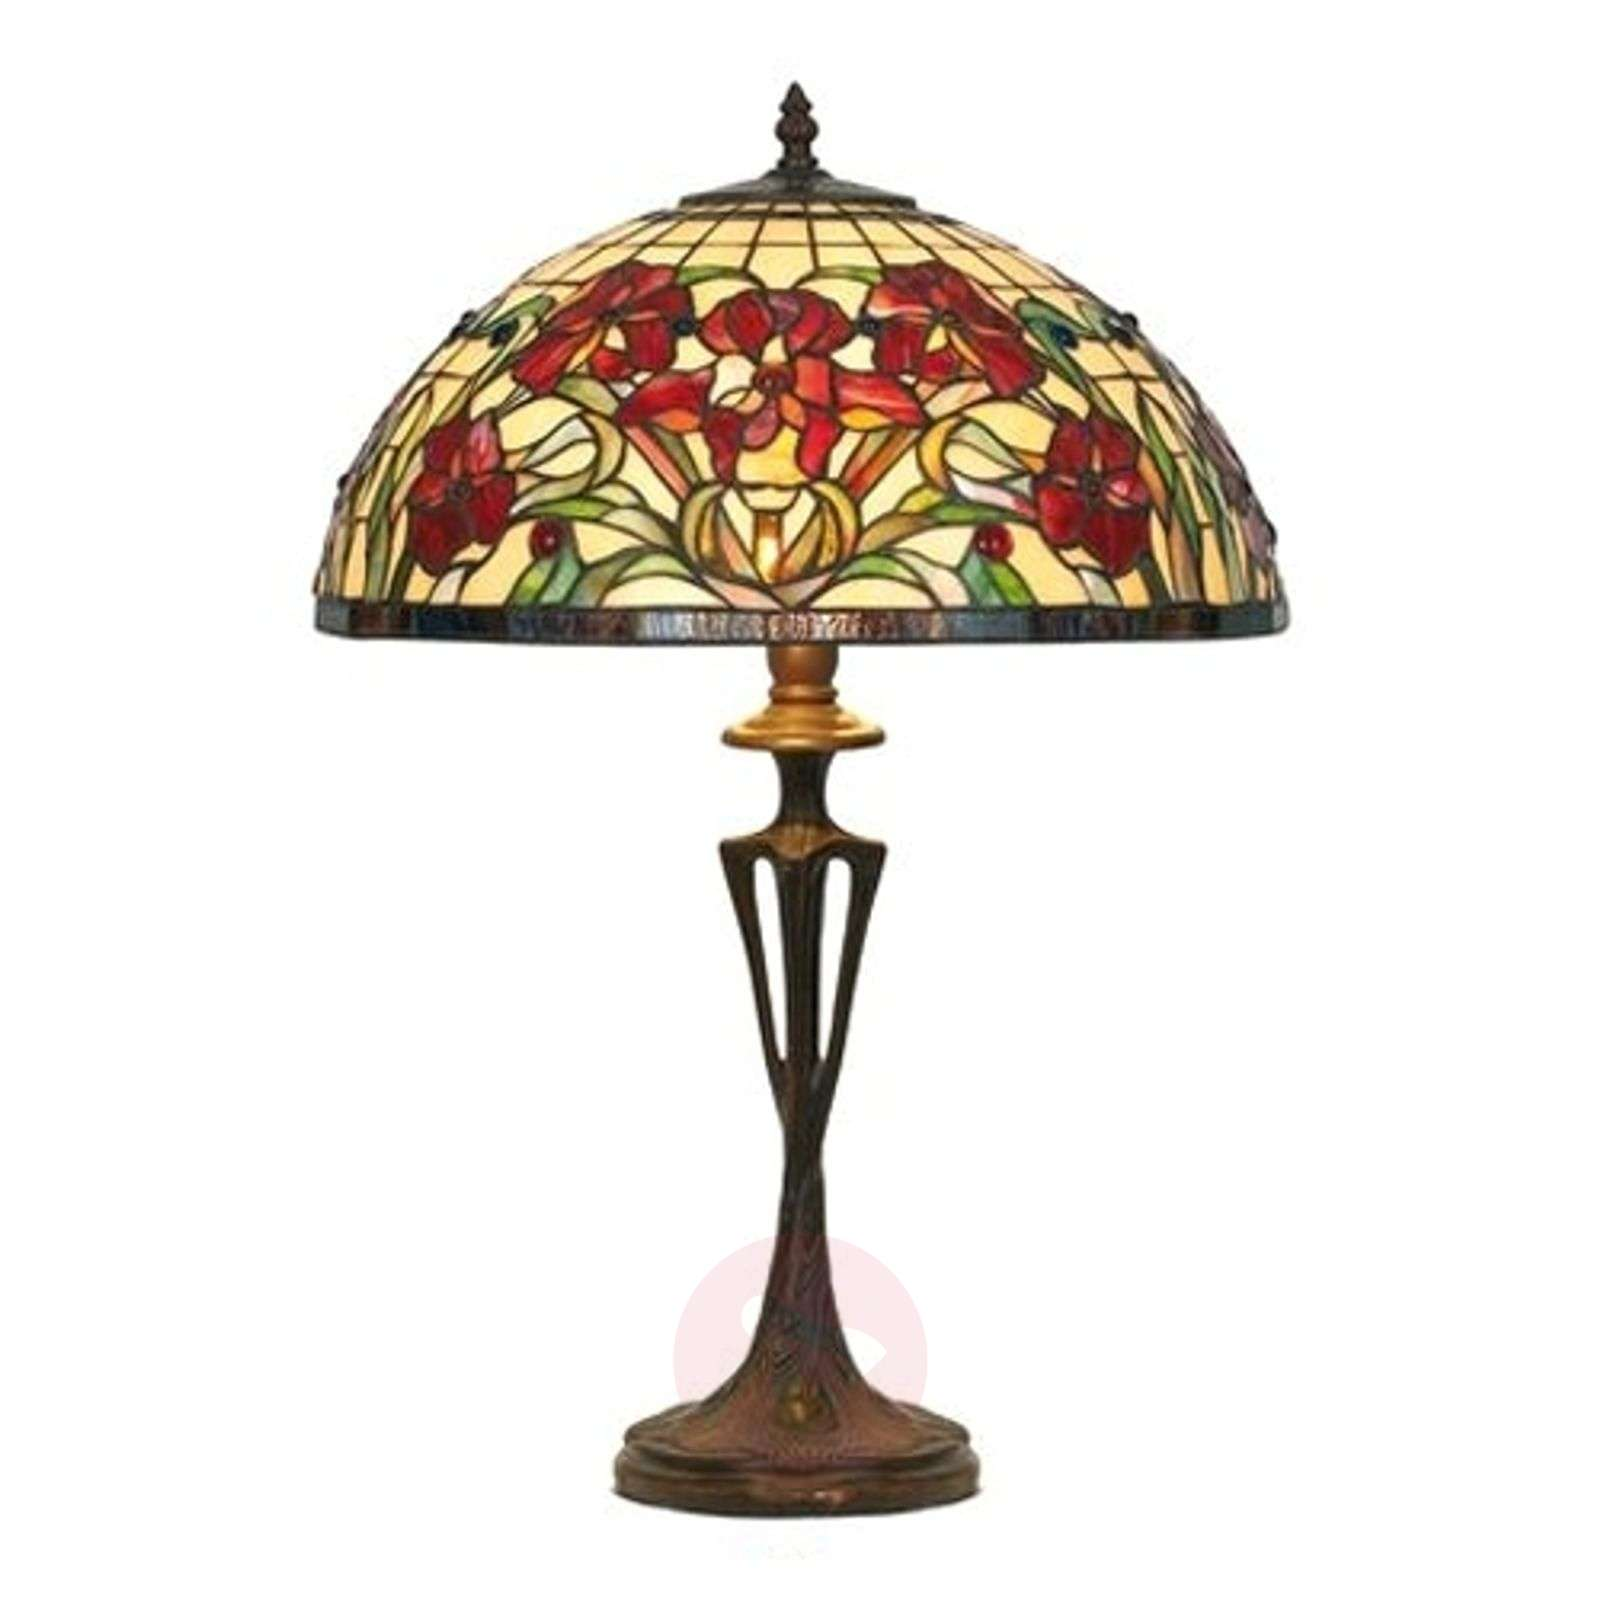 Table lamp Eline in Tiffany style-1032171-01